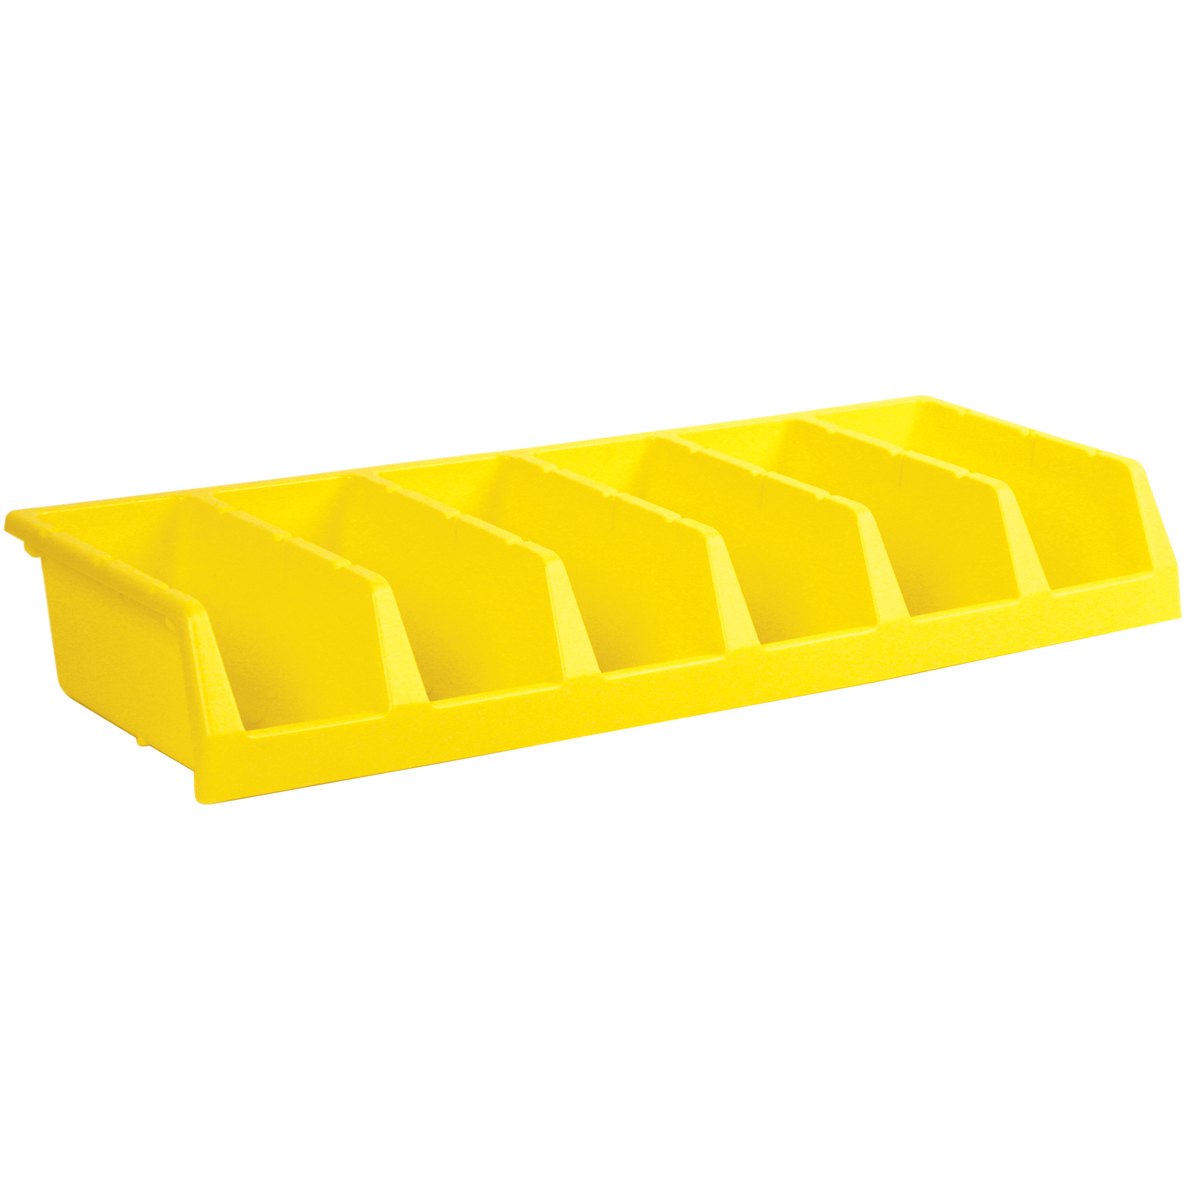 System Bin 12 x 33 x 5, Yellow (30312YELLO).  This item sold in carton quantities of 5.